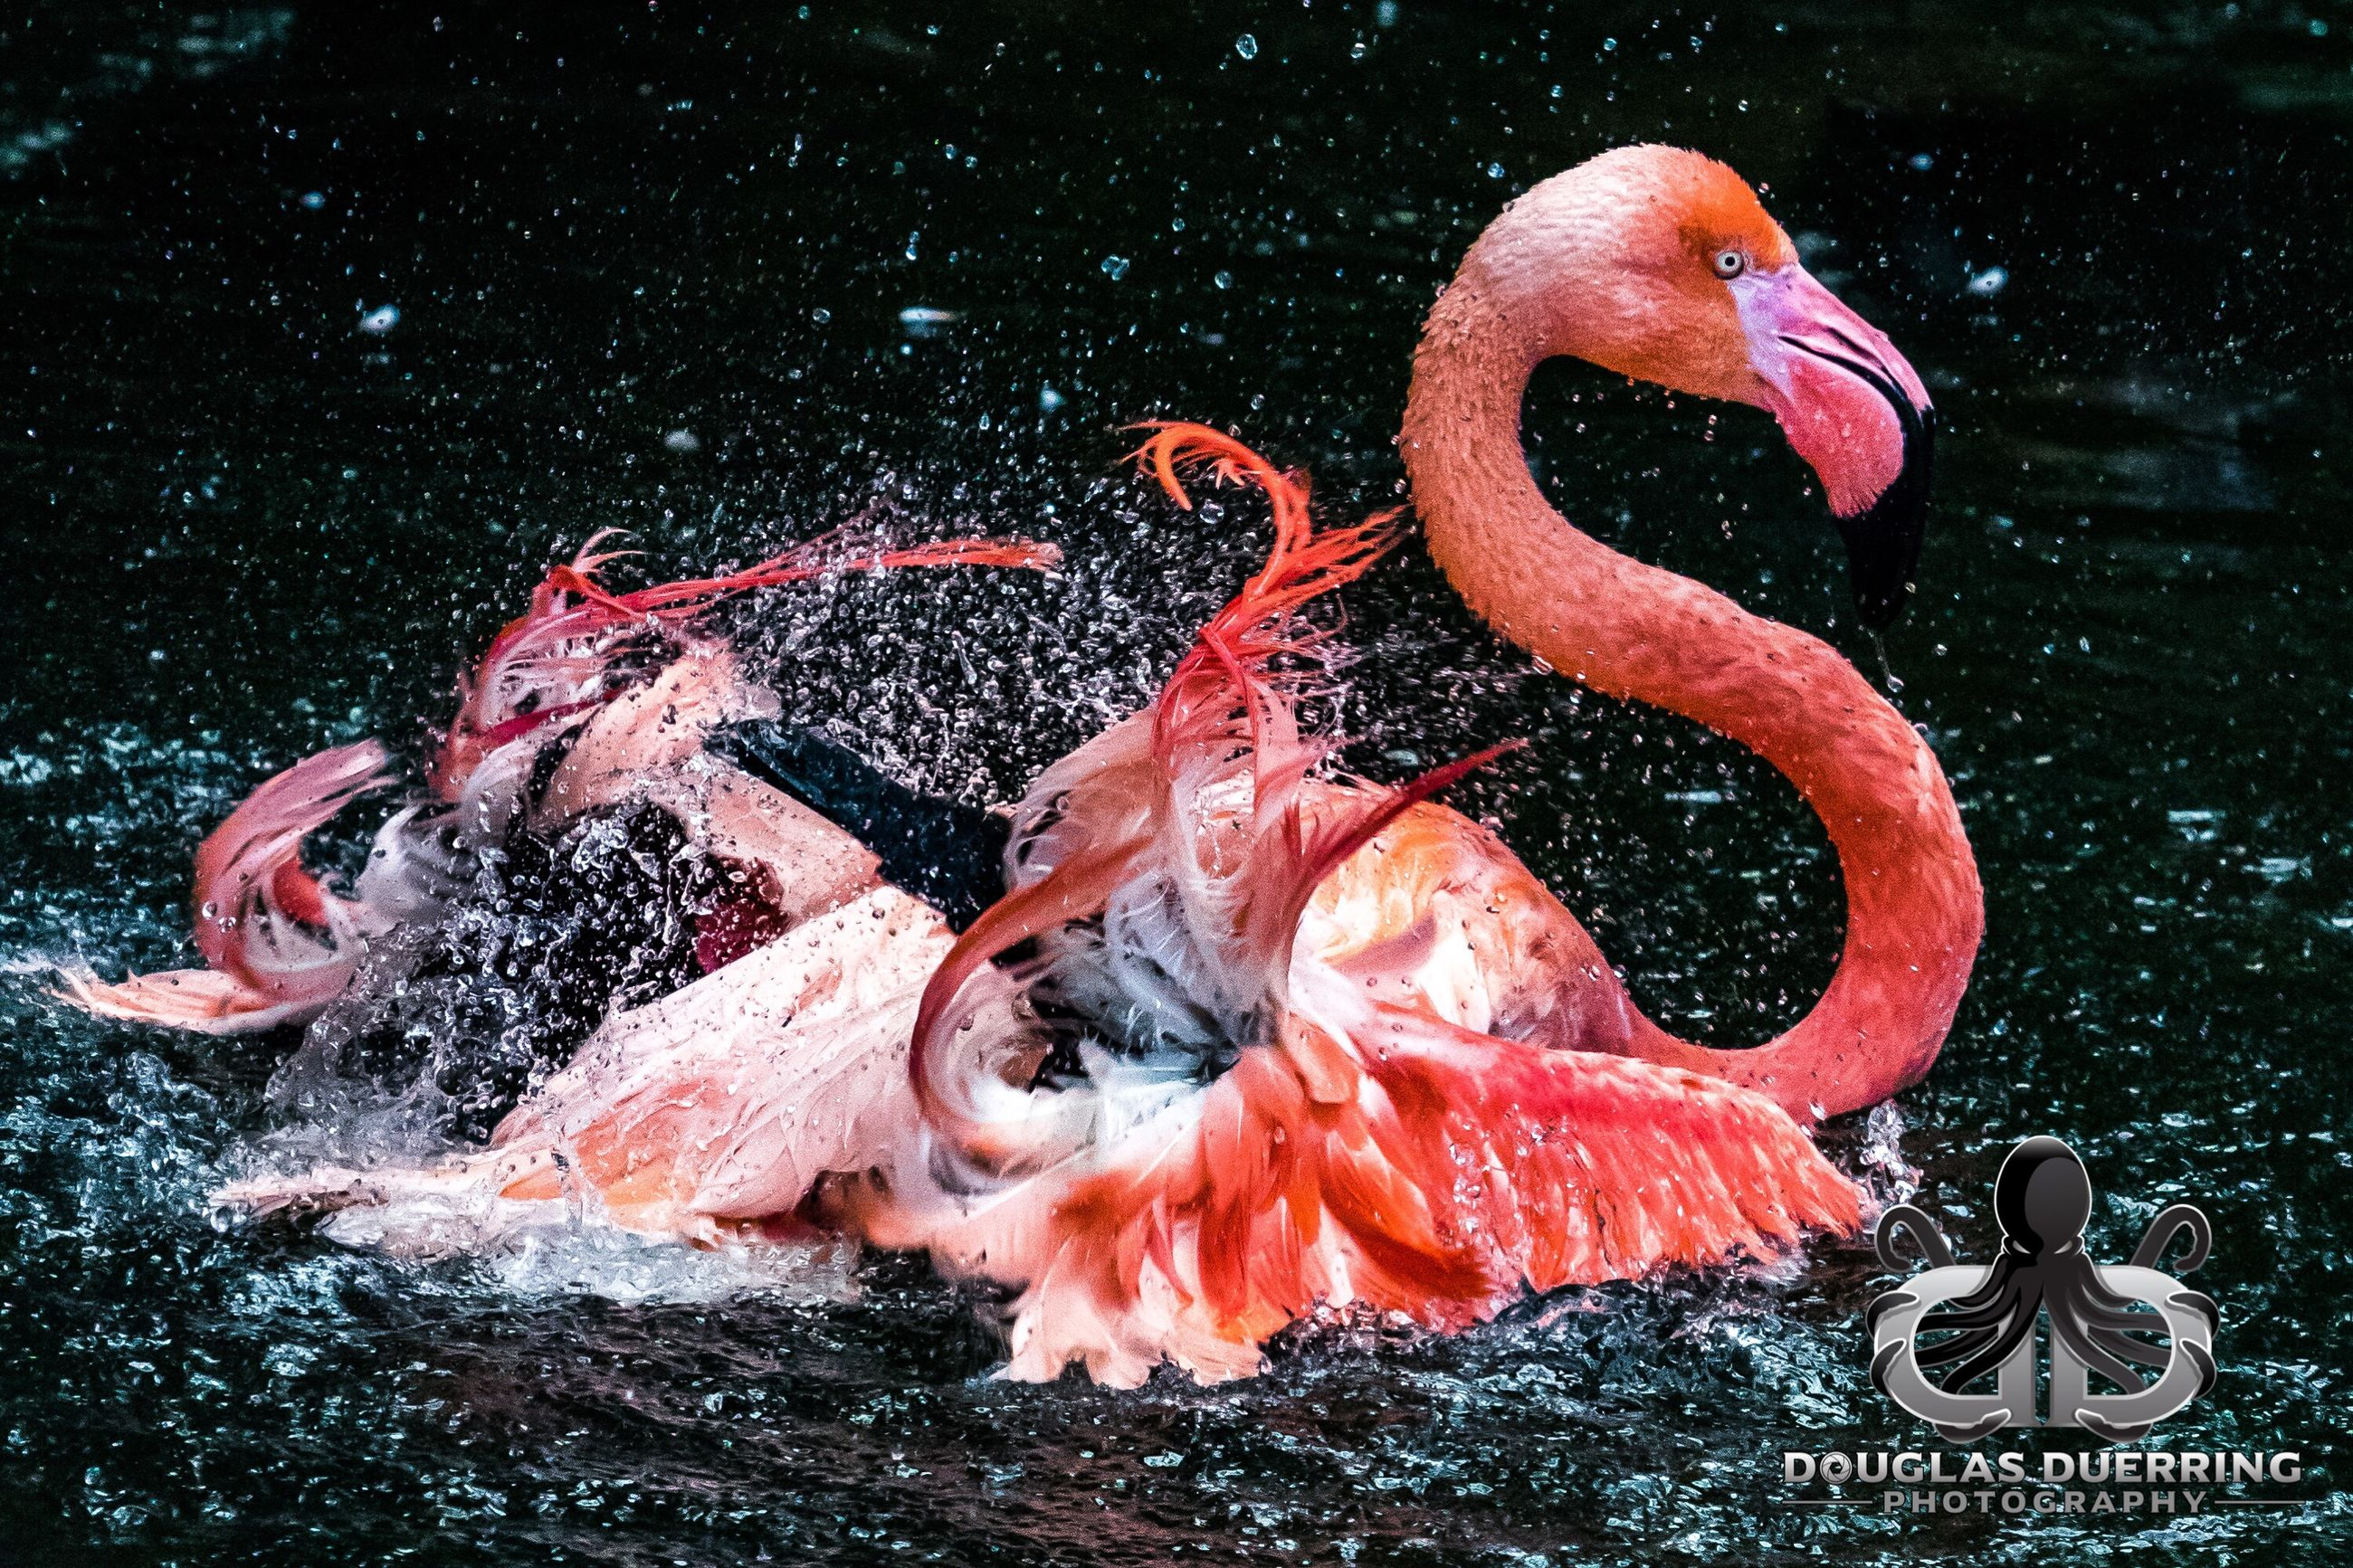 water, no people, flamingo, animals in the wild, outdoors, day, nature, animal themes, close-up, bird, swan